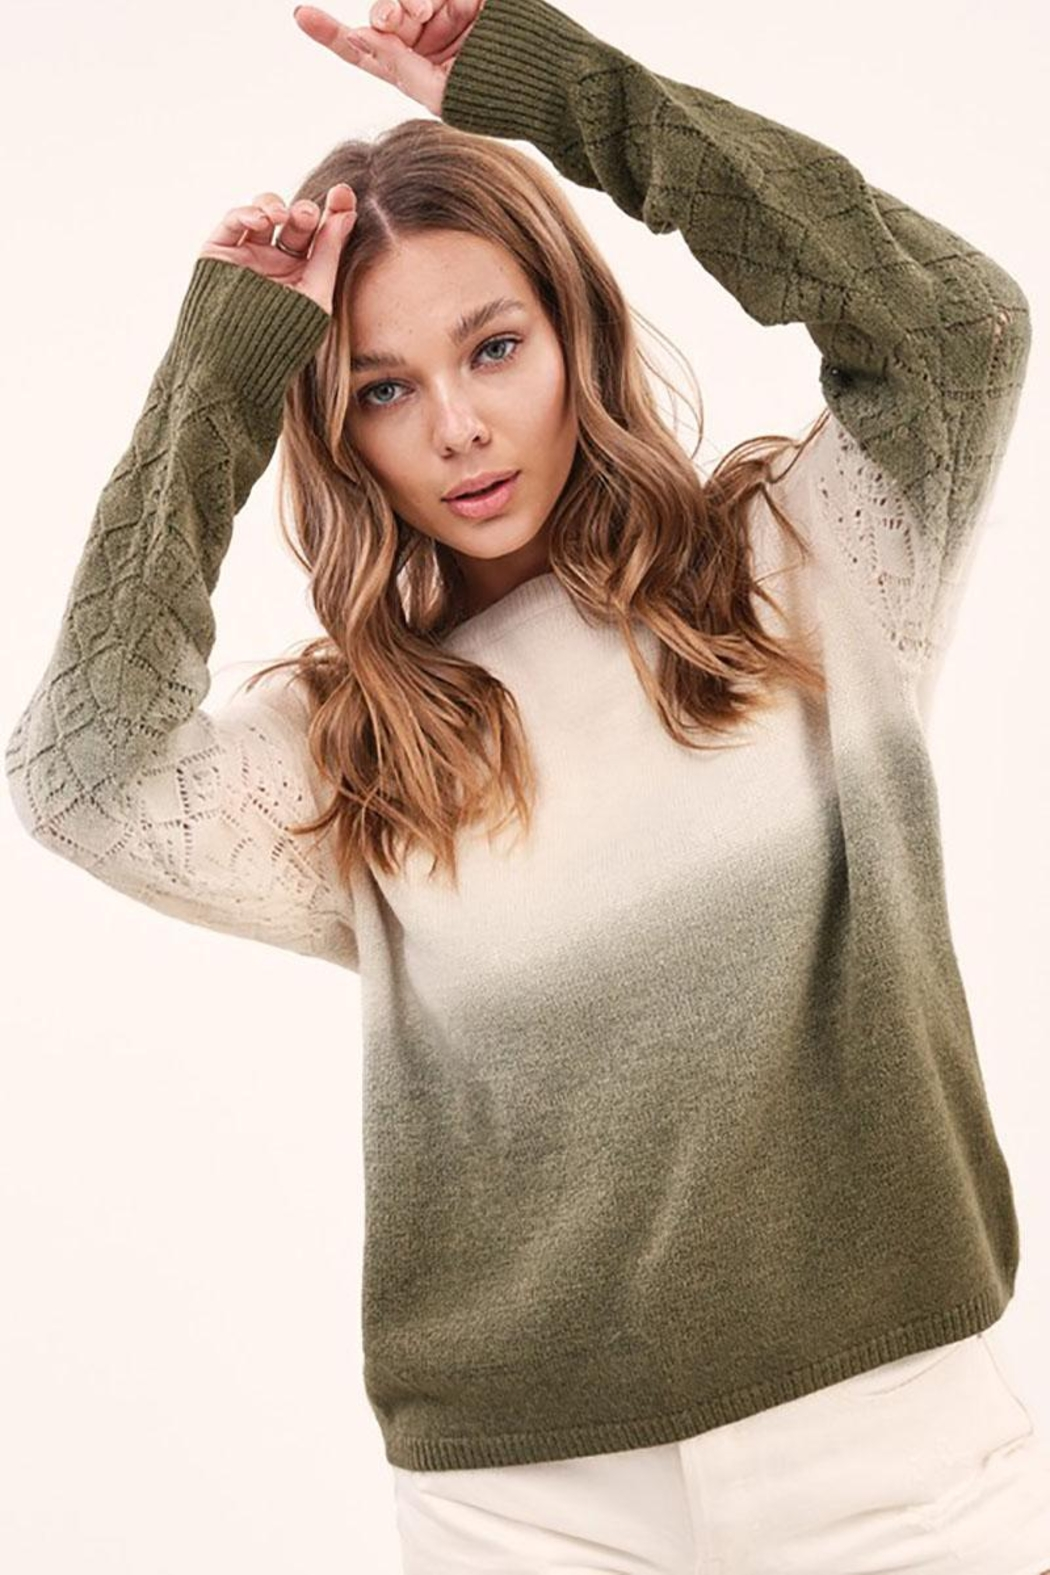 LA MIEL  Dip Dye Gradient Knit Pullover Sweater - Front Cropped Image